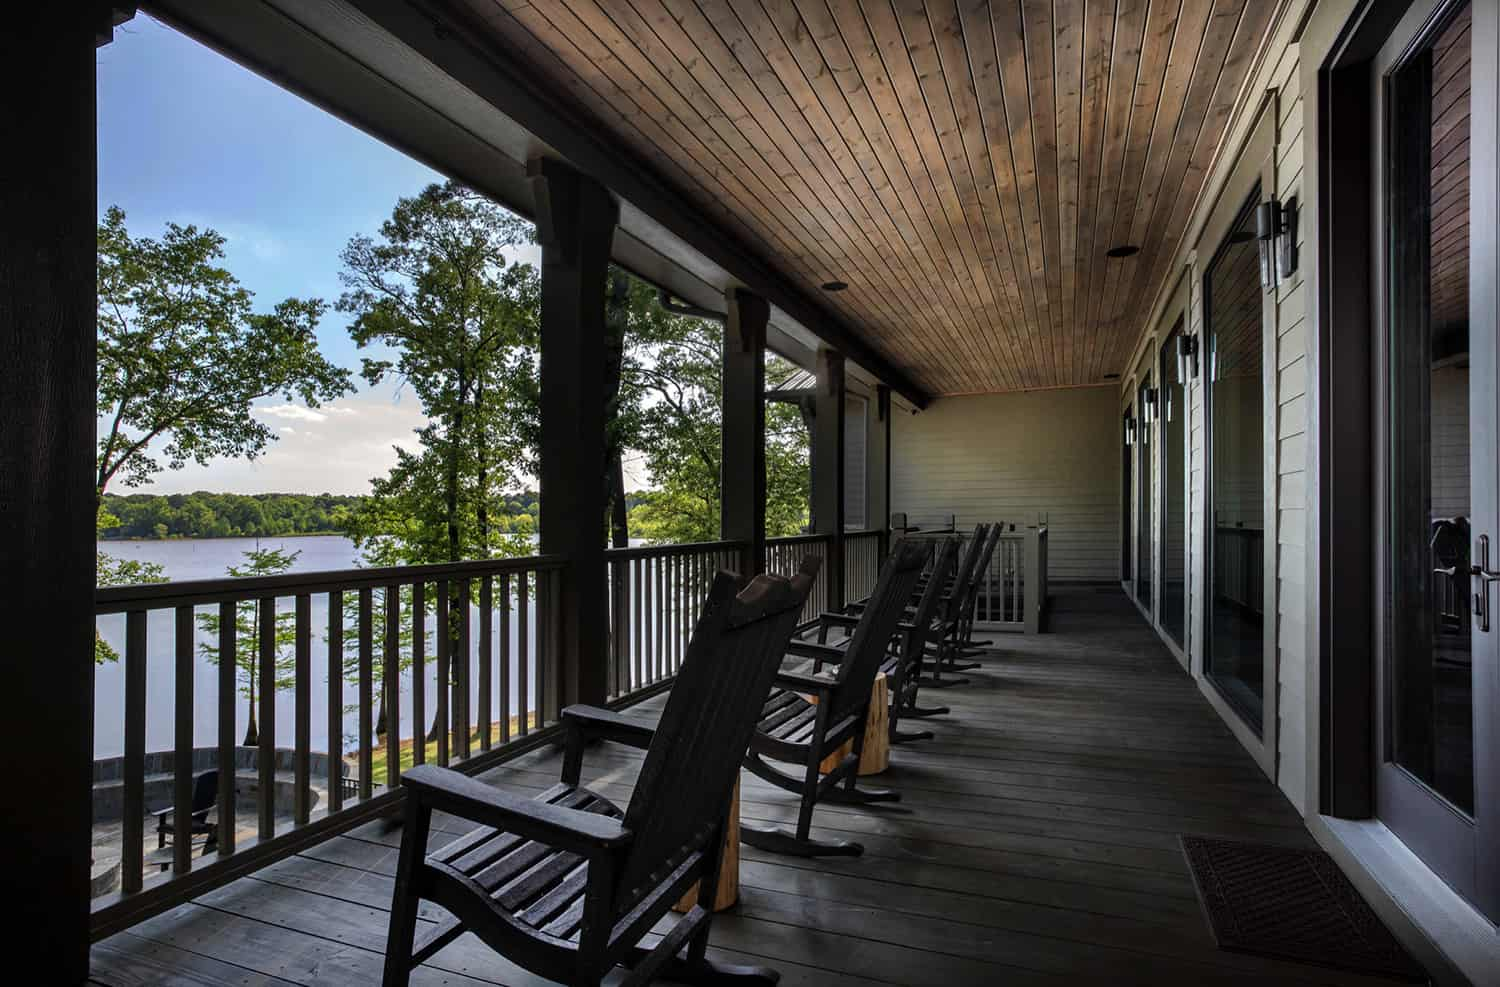 rustic-porch-overlooking-the-lake